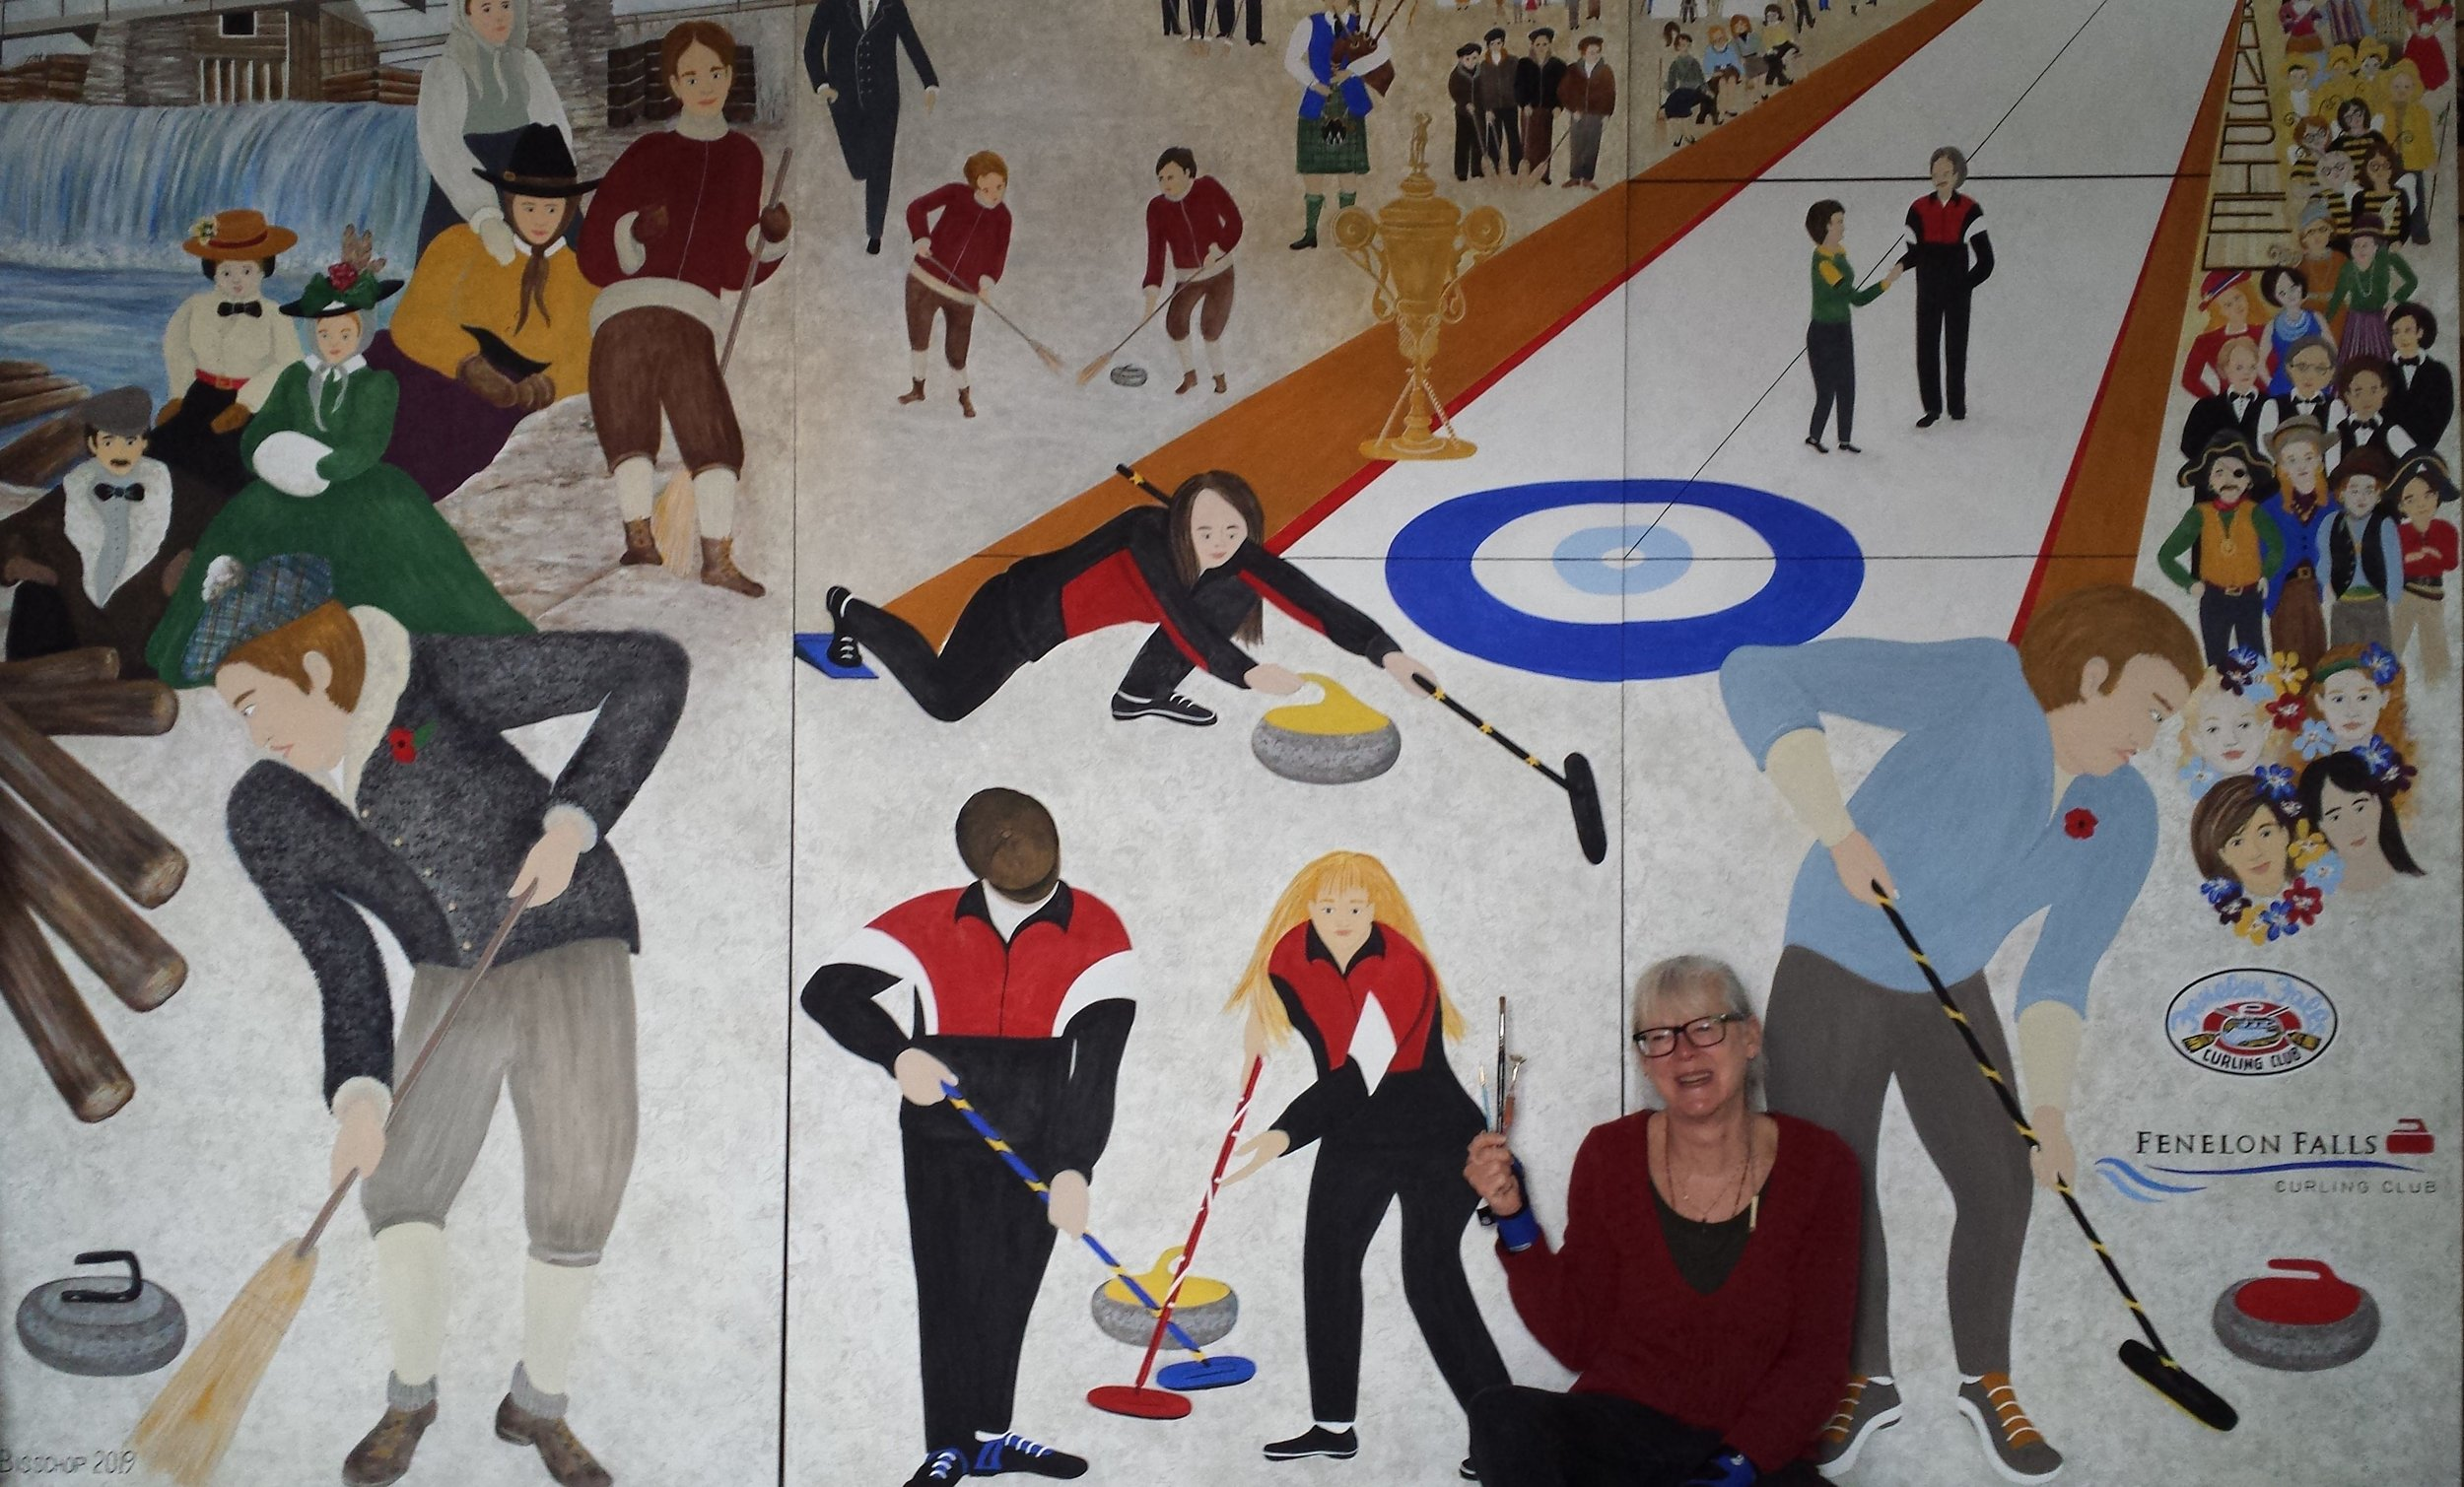 Donna Bisschop with her newly finished mural for the Fenelon Falls Curling Club